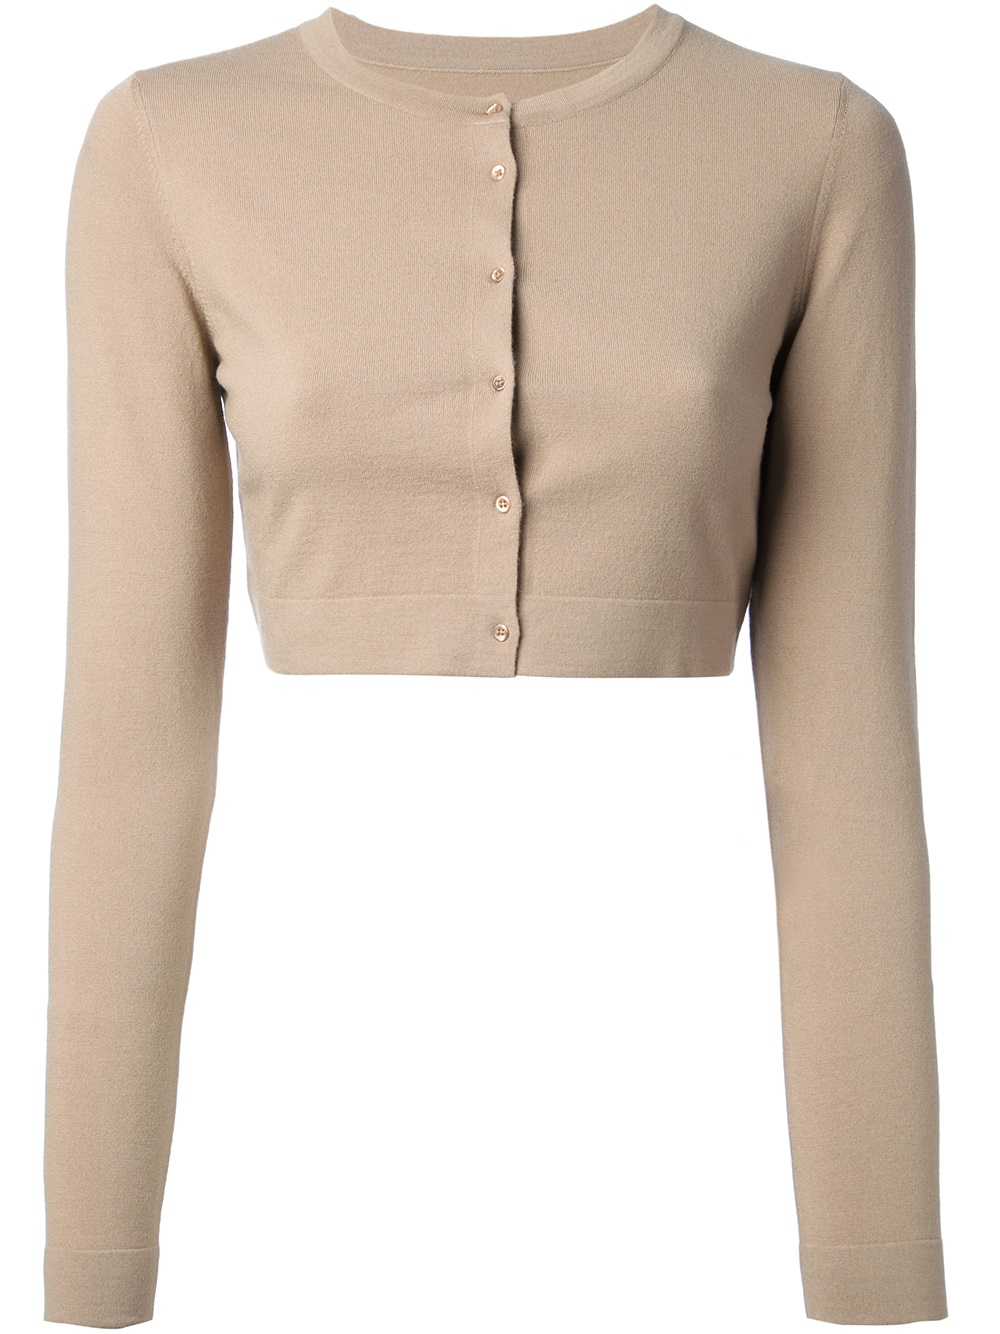 Alaïa Cropped Cardigan in Natural | Lyst